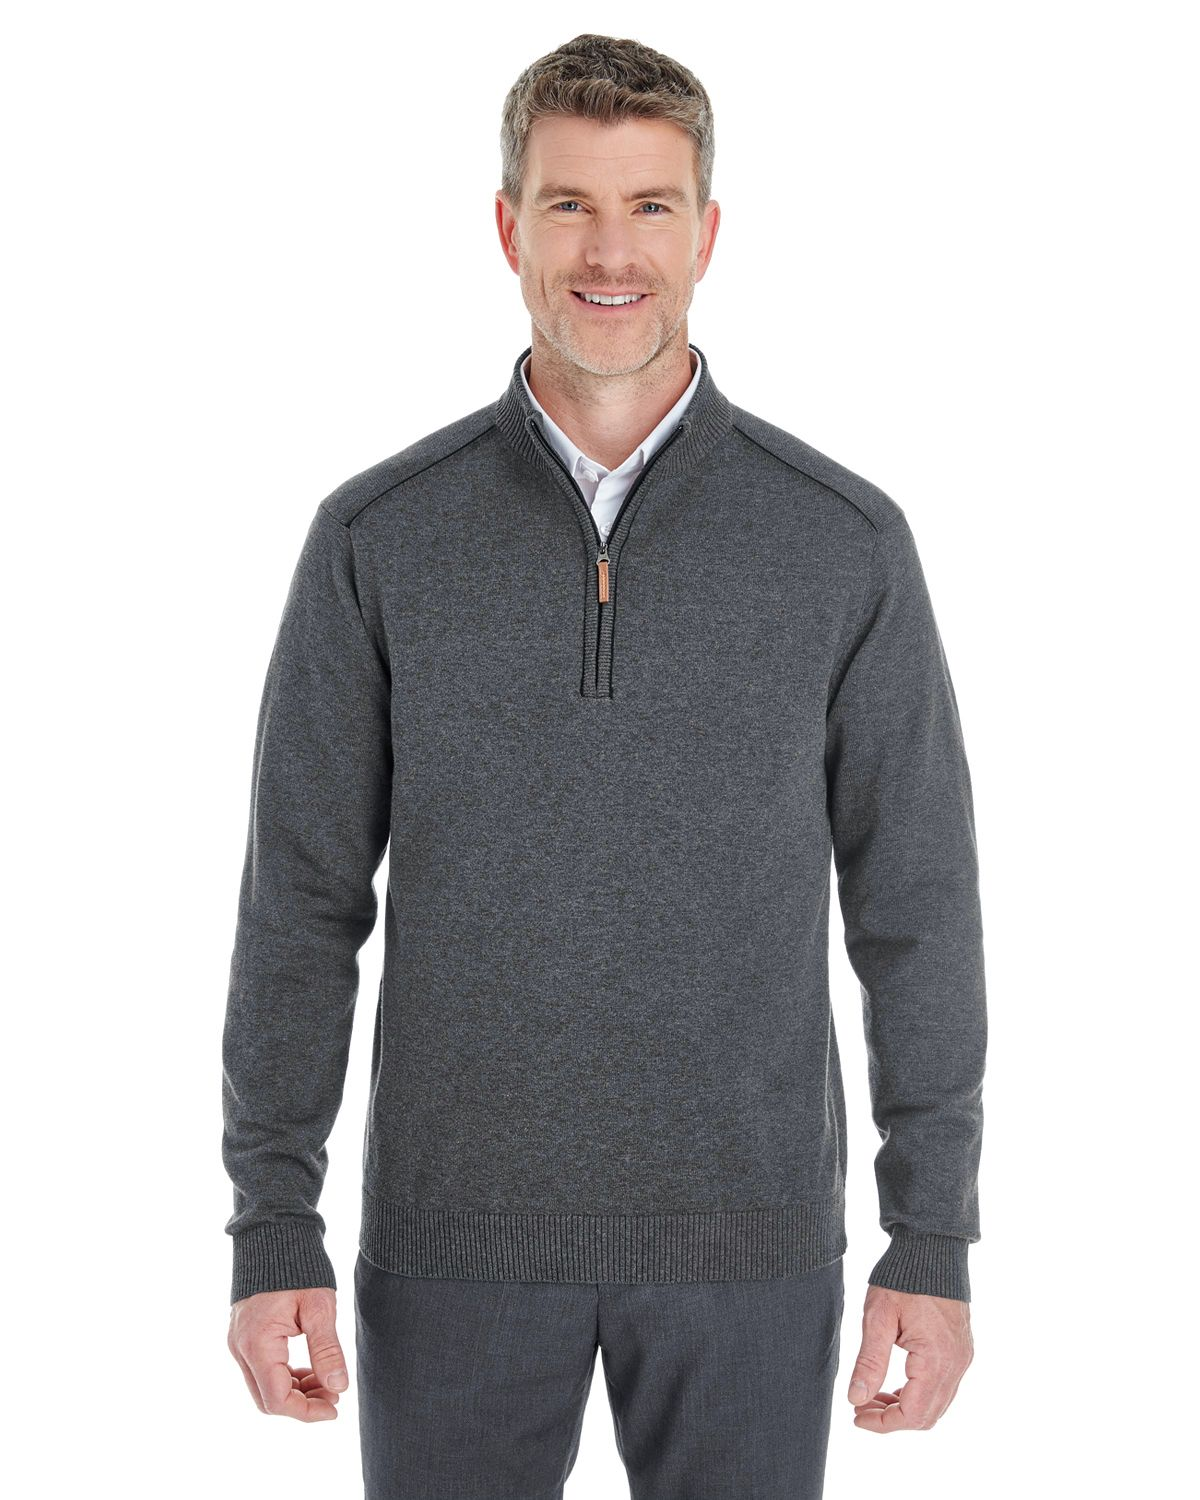 Devon & Jones DG478 - Men's Manchester Fully-Fashioned Half-Zip Sweater #dejonjones #halfzipsweater #mensfashion